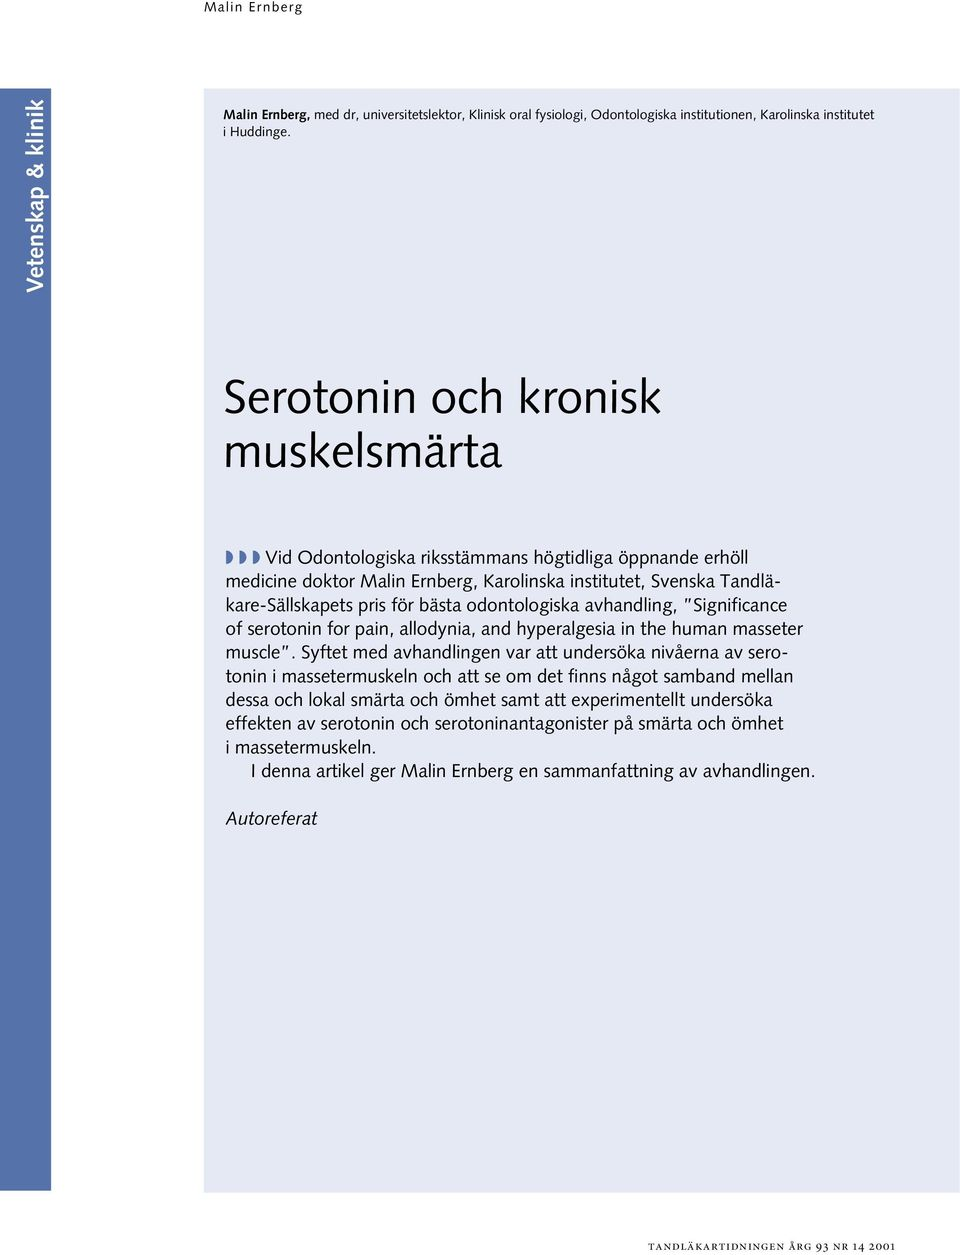 odontologiska avhandling, Significance of serotonin for pain, allodynia, and hyperalgesia in the human masseter muscle.